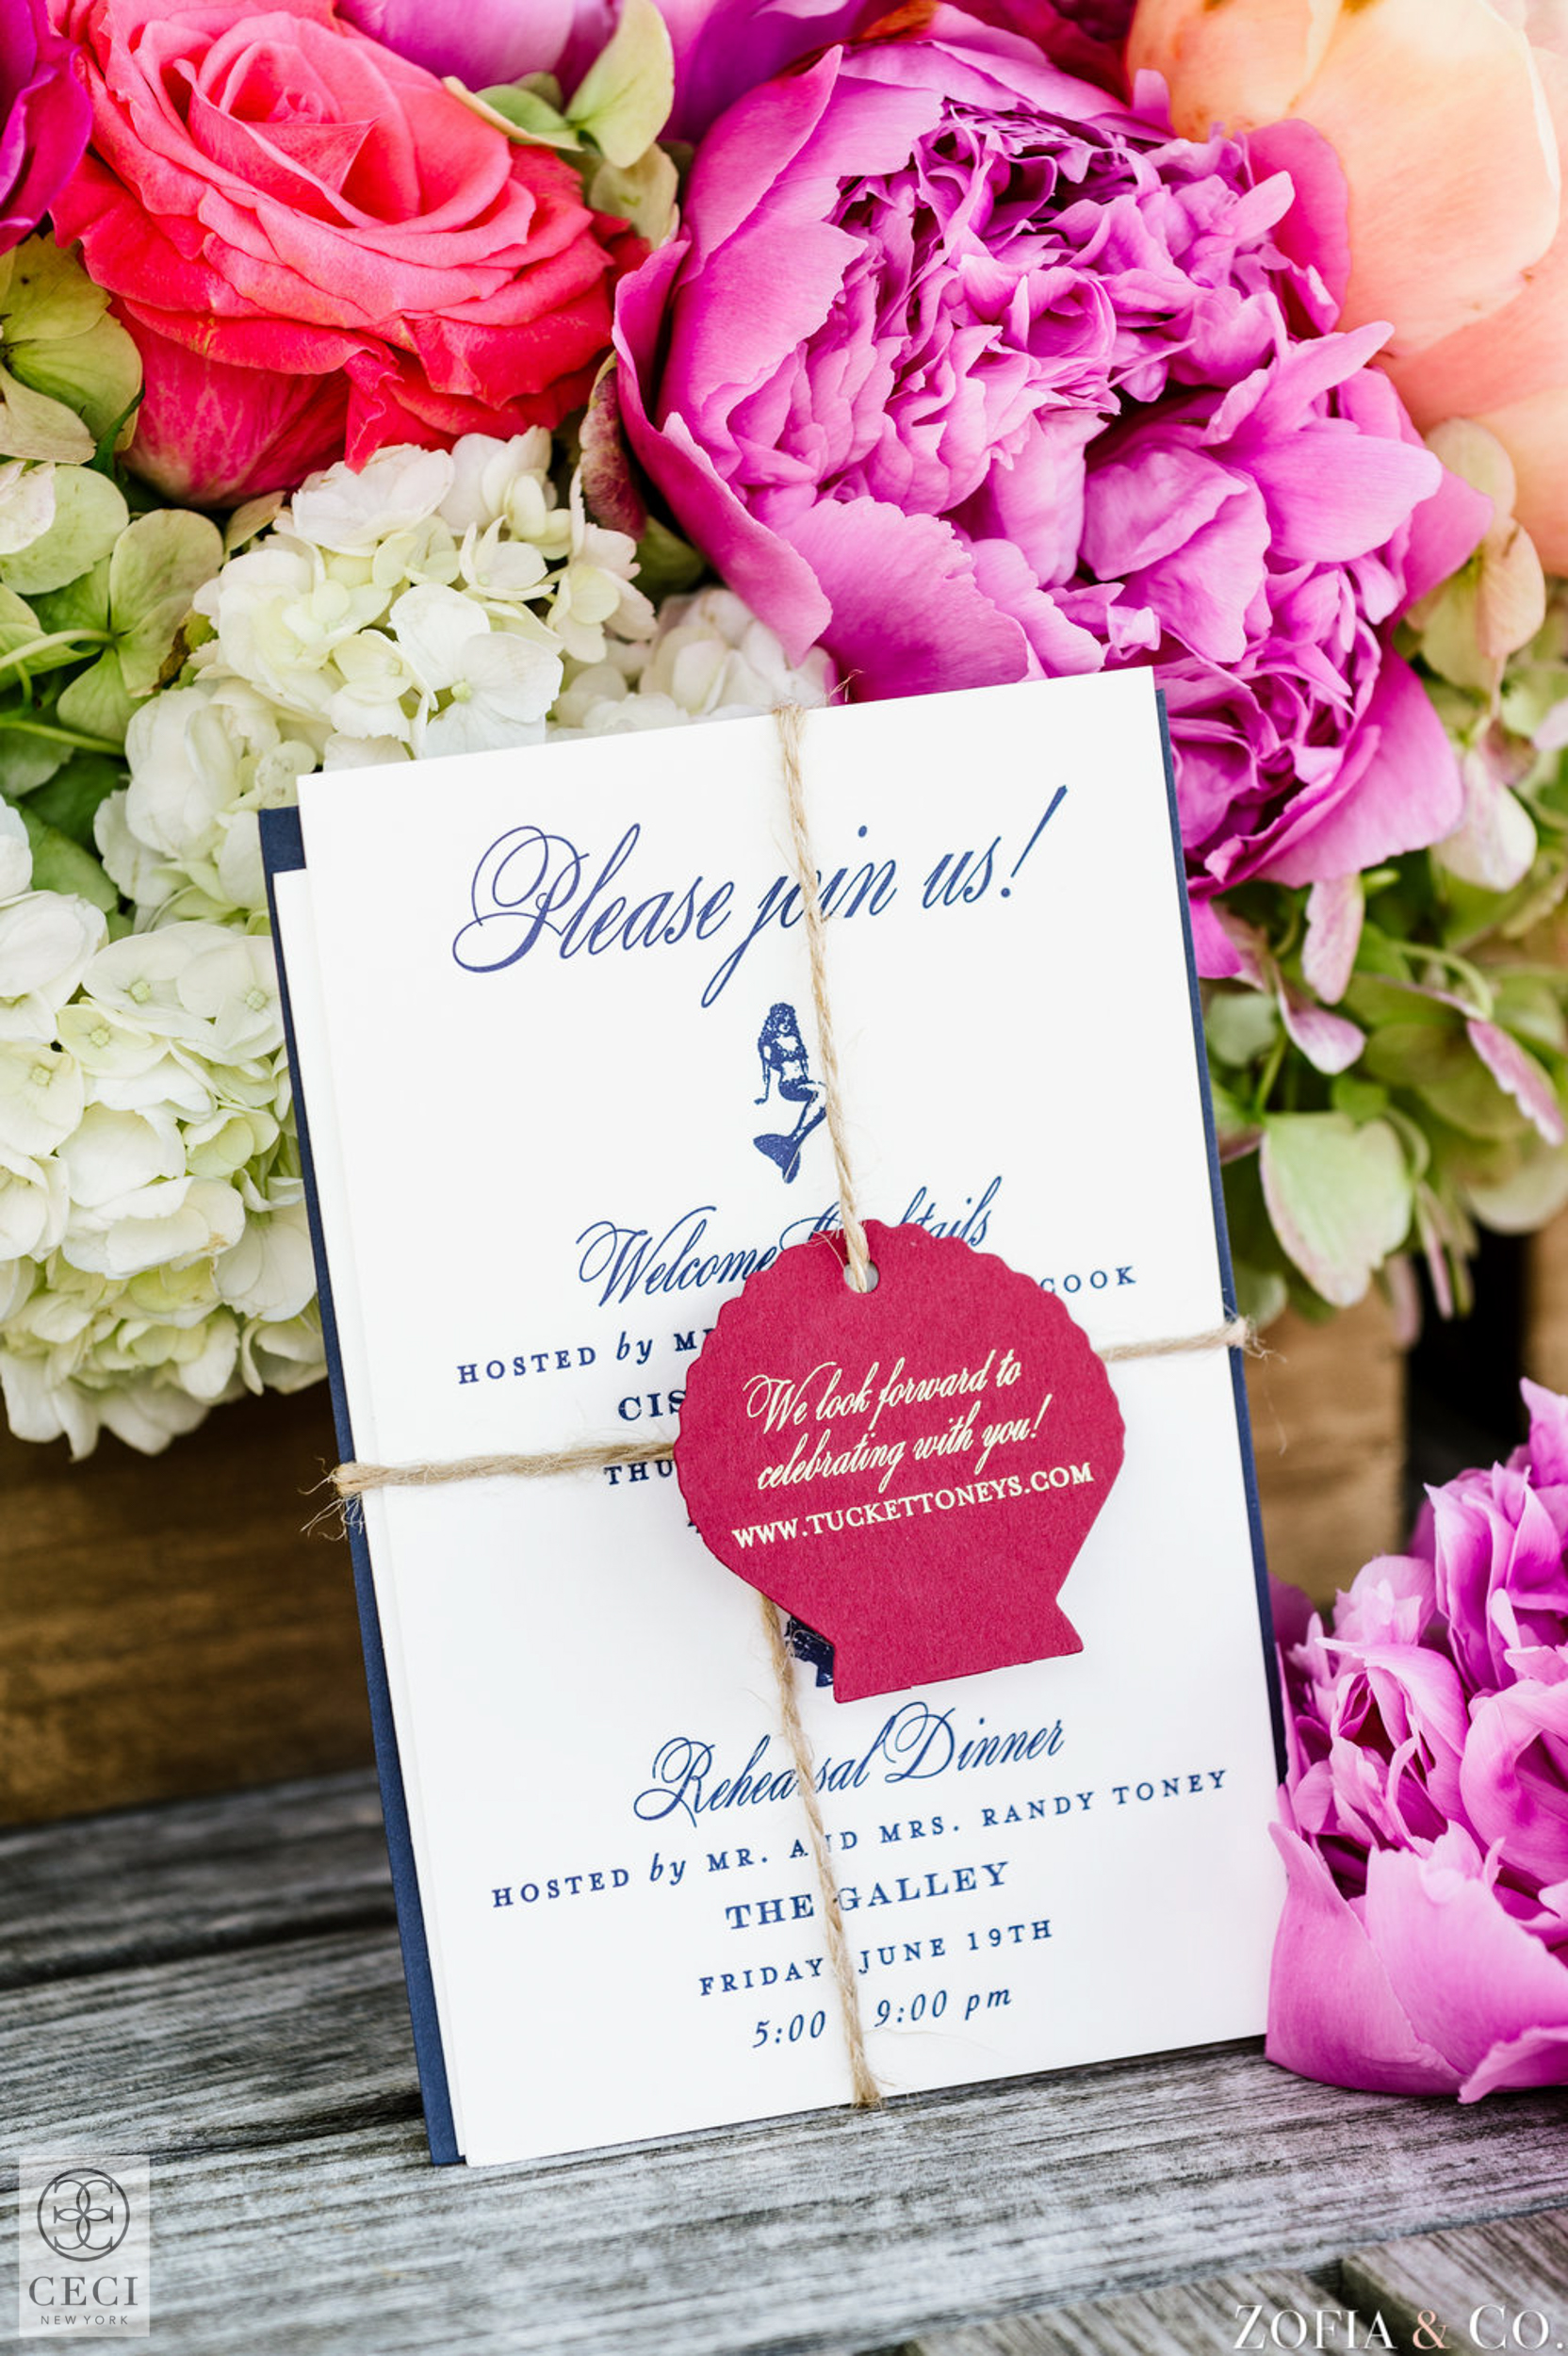 Ceci_New_York_Custom_Luxury_Wedding_LaserCut_Stationery_Personalized_Couture_Foil_Stamping_Black_Chic_-15 copy.jpg